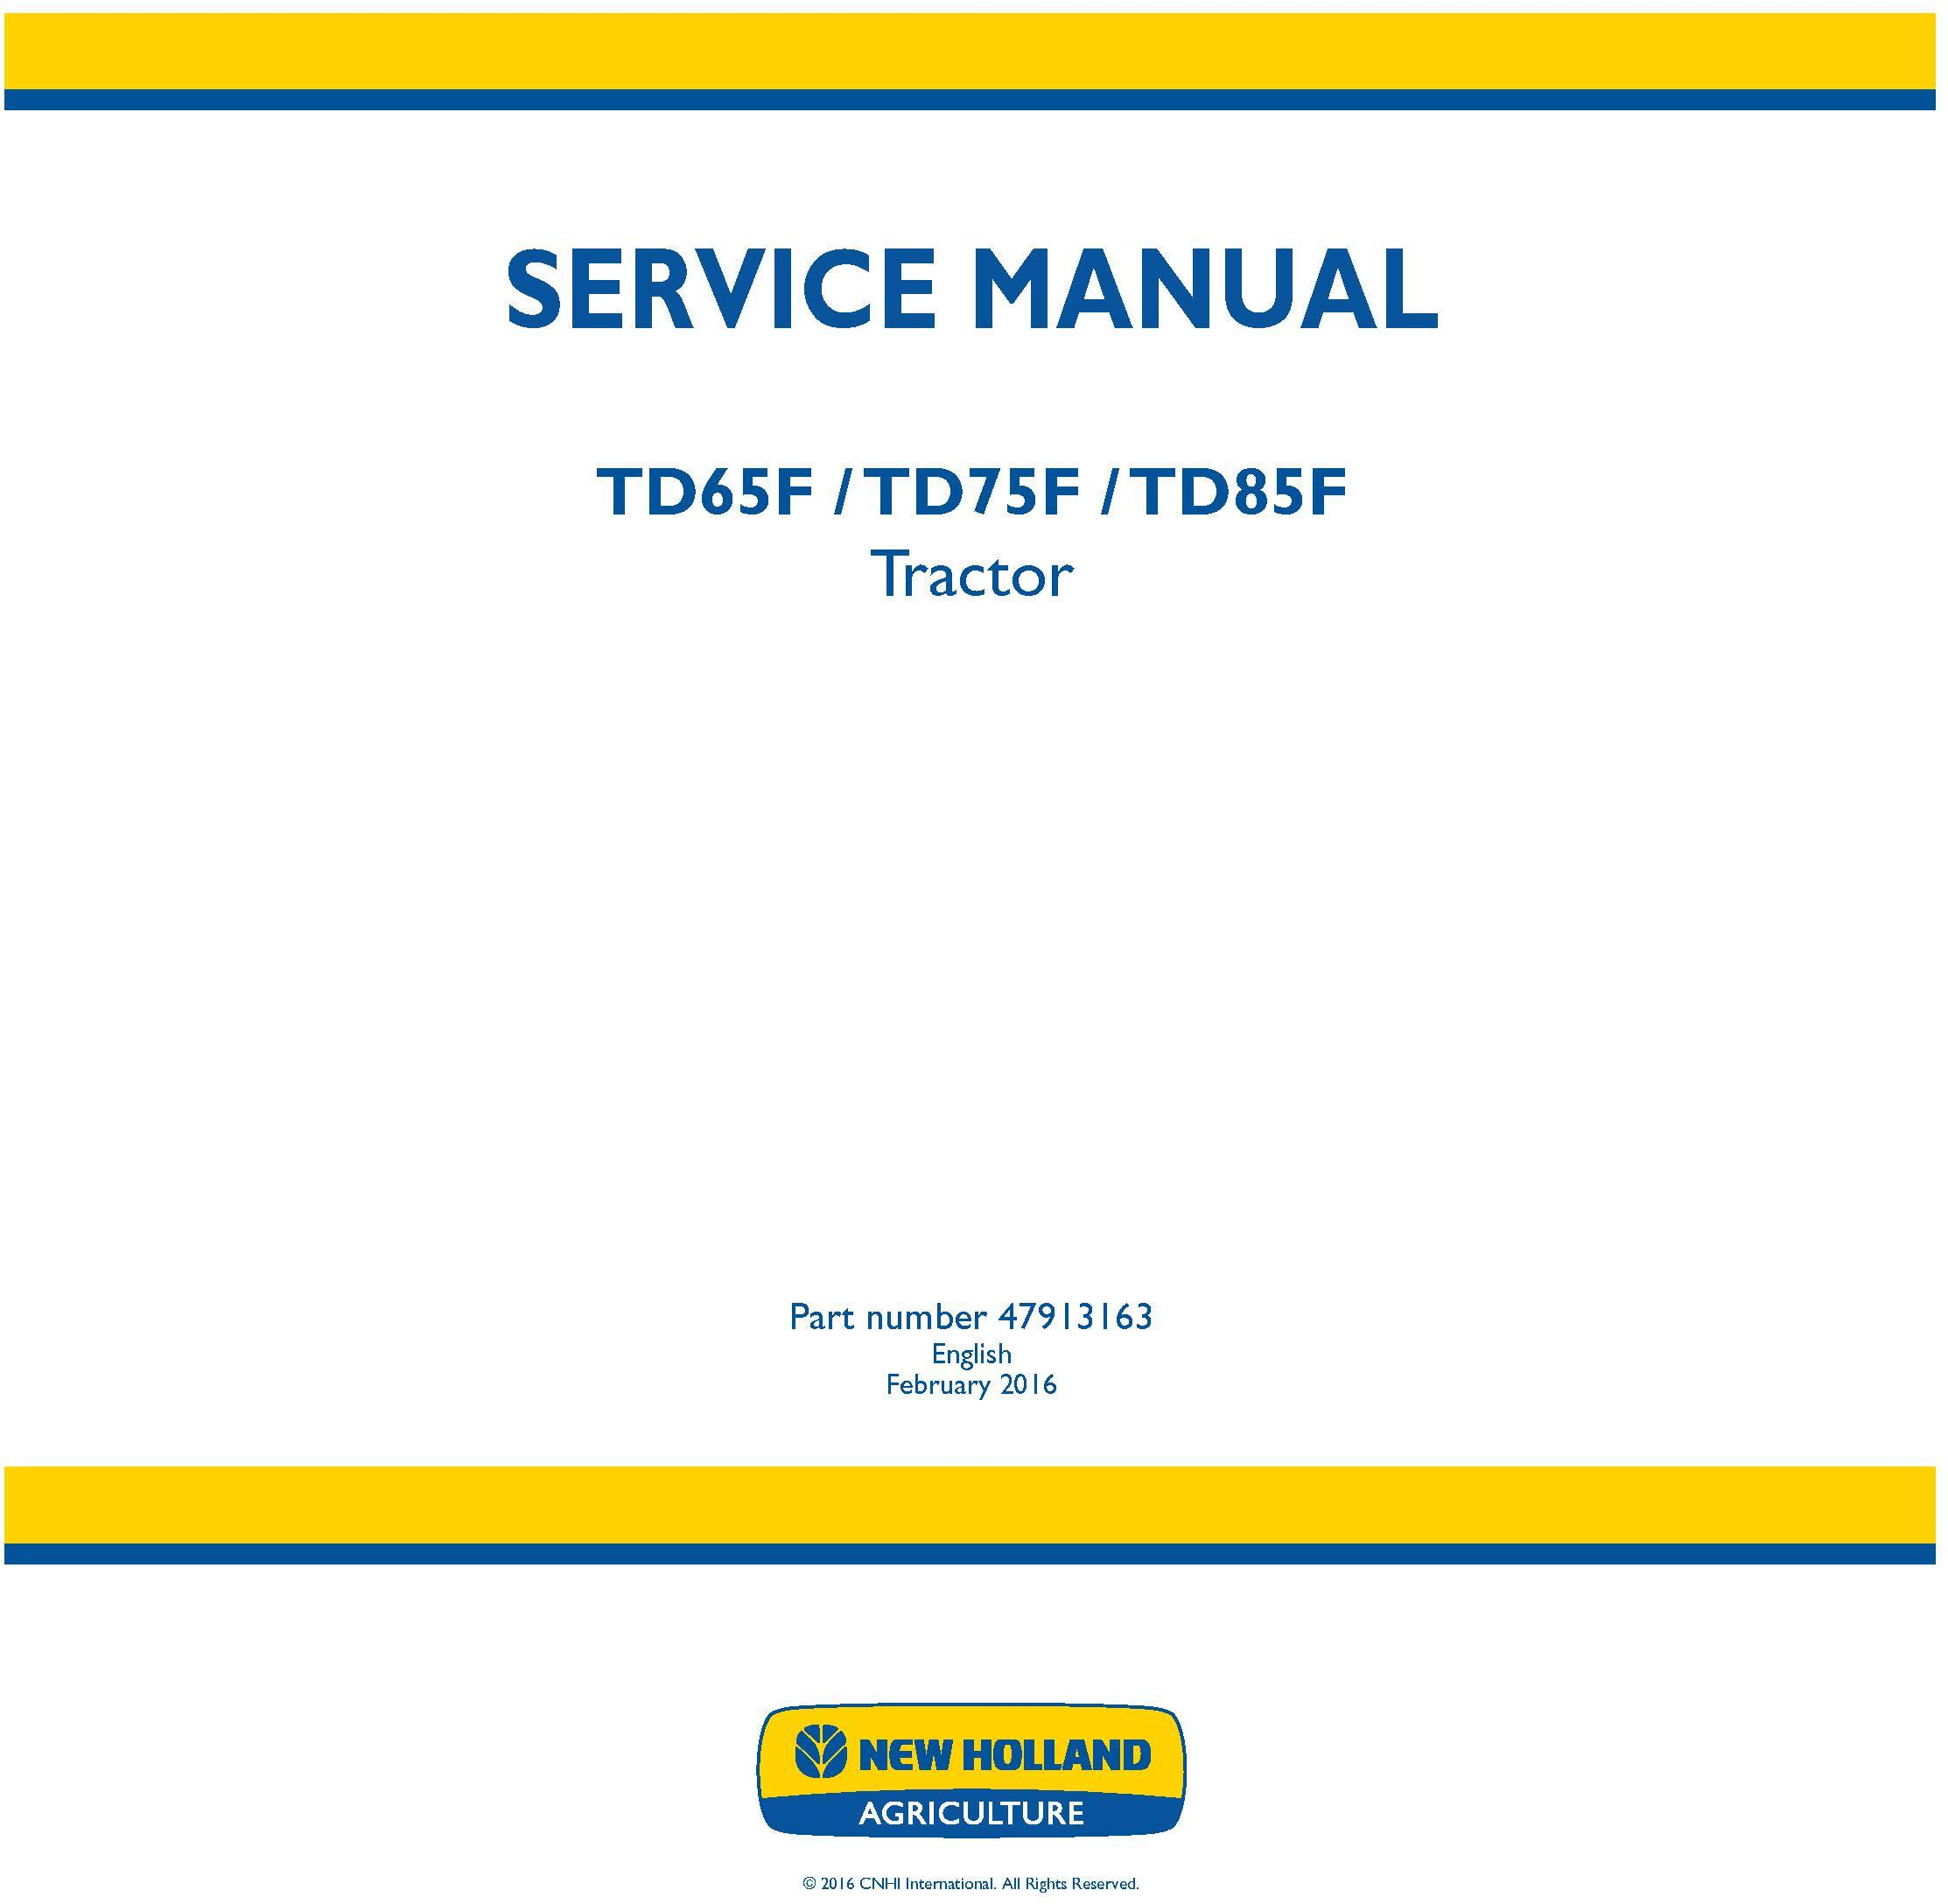 New Holland TD65F, TD75F, TD85F Tractor Service Manual - 19450